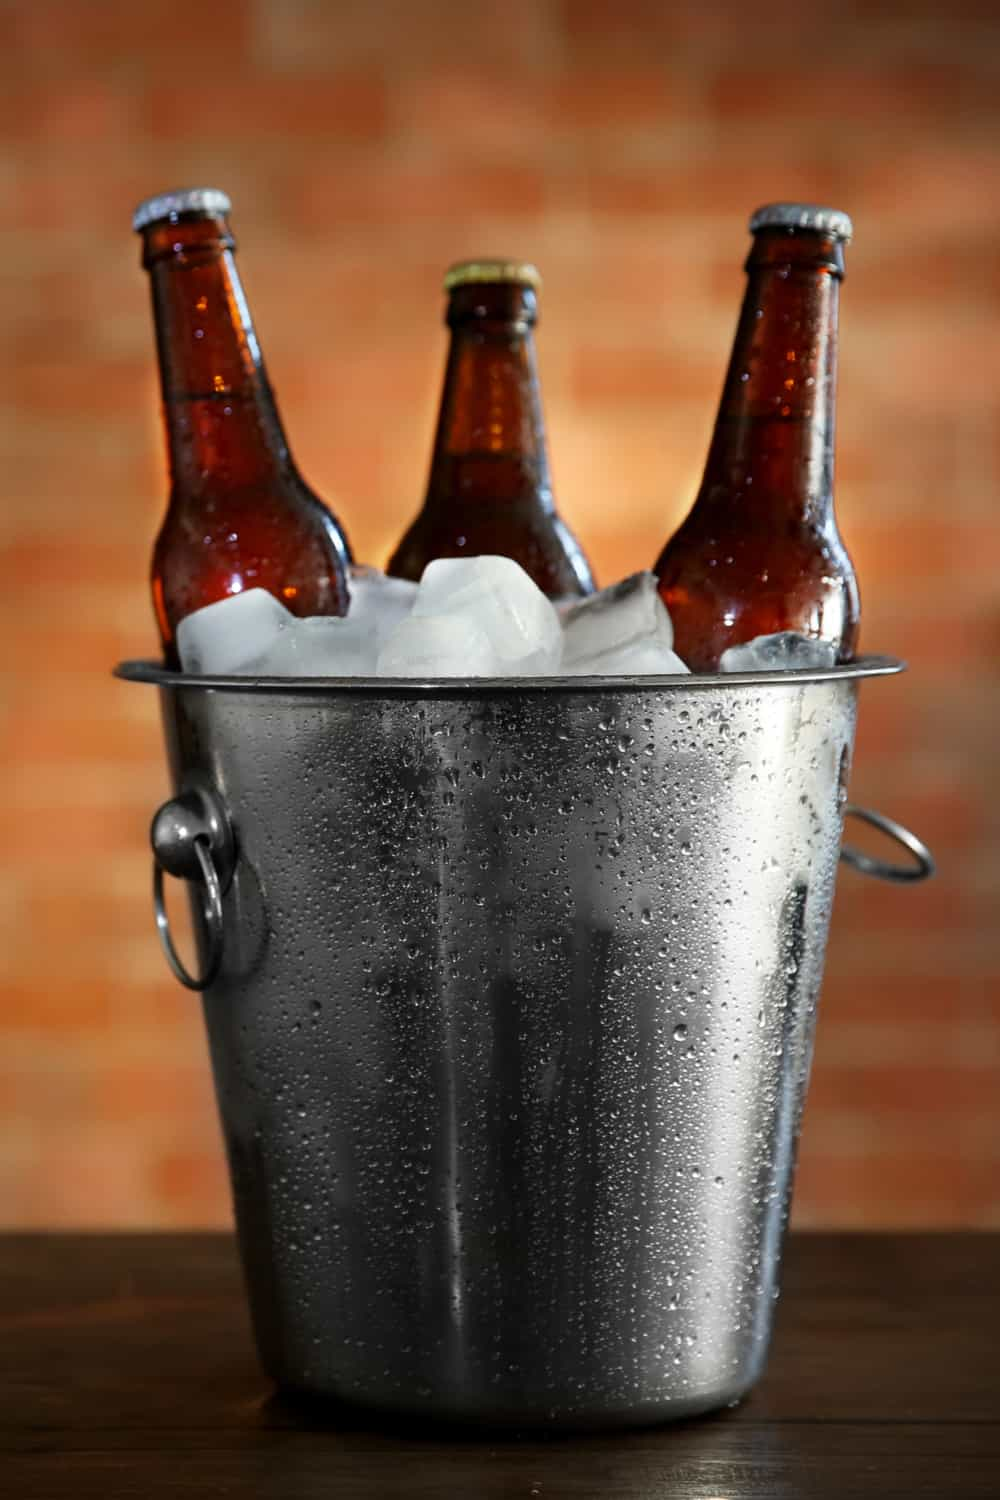 19 Homemade Ice Bucket Plans You Can DIY Easily